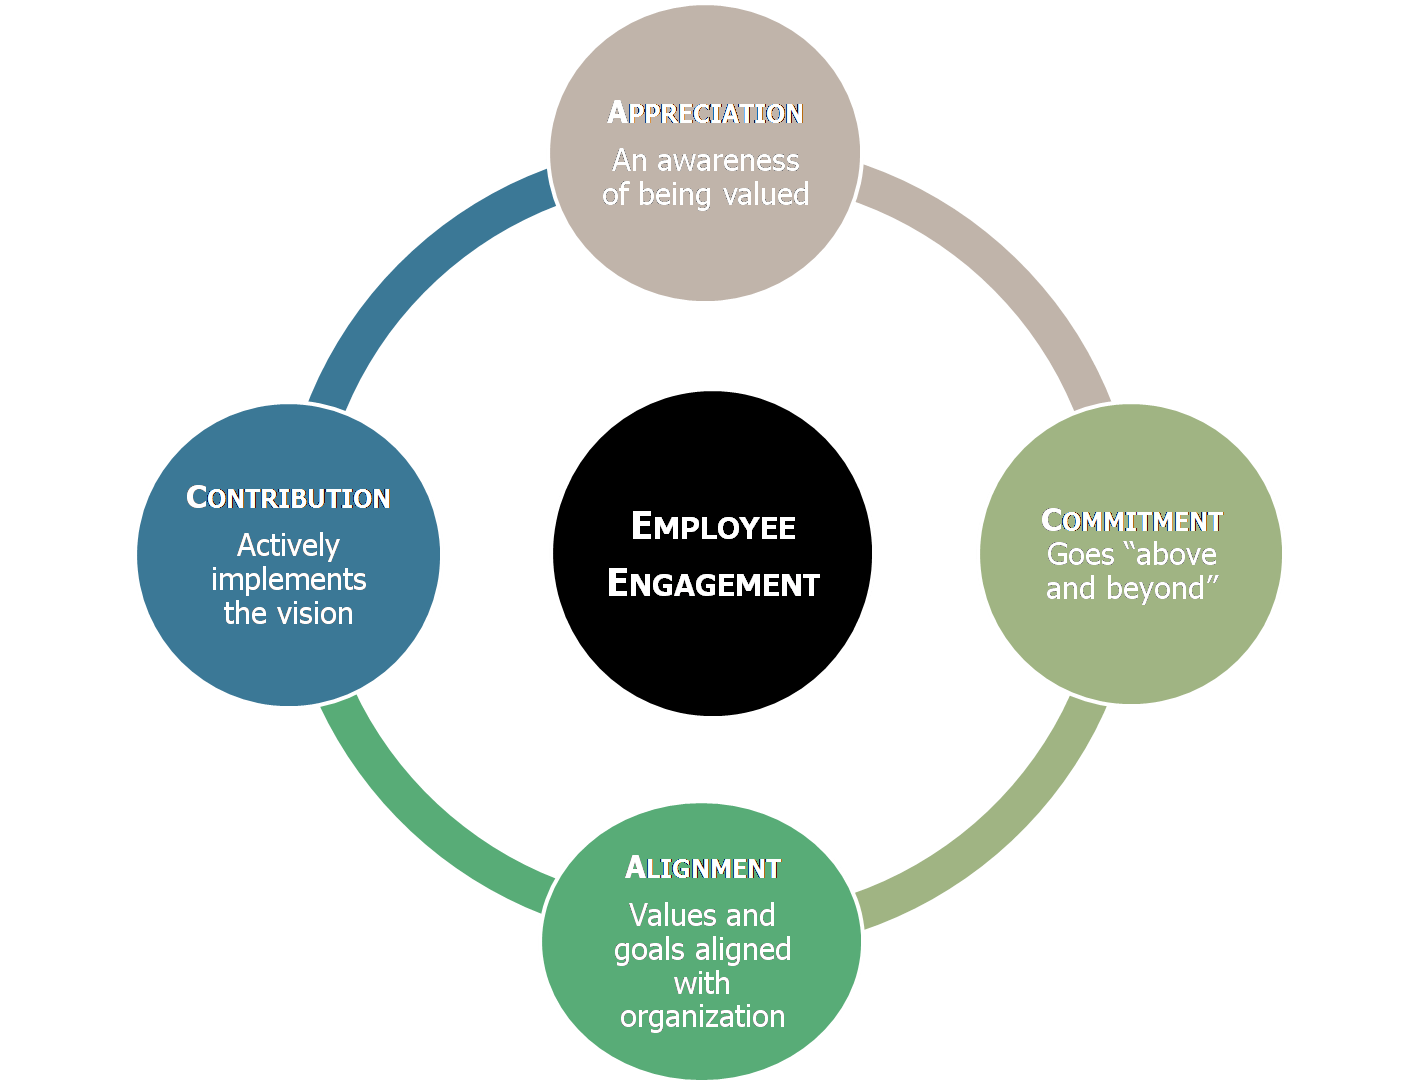 employee engagement definition,business engagement definition,employee engagement review of literature,crucial importance of employee engagement,benefits employee engagement,employee engagement in the public sector,employee engagement activities,employee engagement ideas,employee engagement strategy,